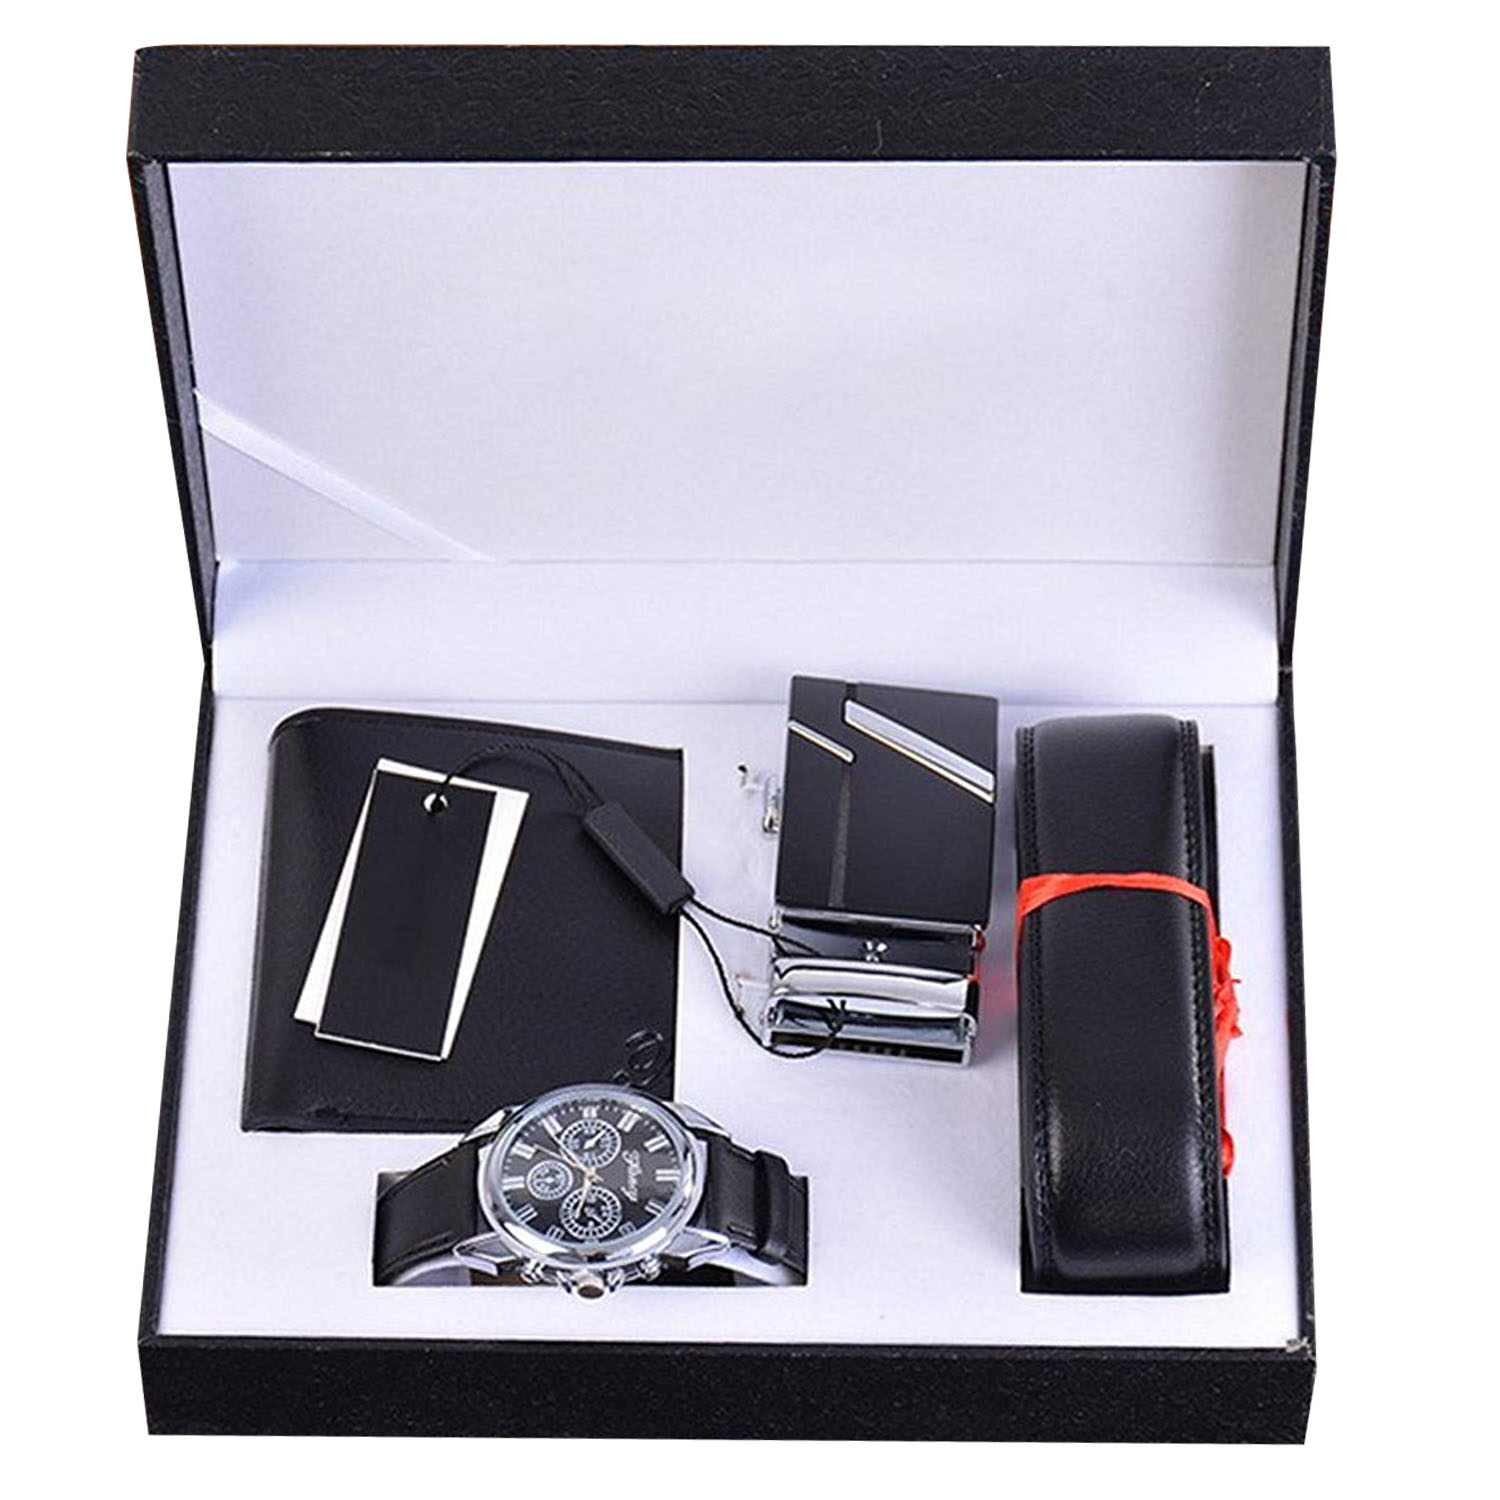 Mens Black Artificial Leather Quartz Analog Wrist Watch Belt Wallet Set with Box крем tony moly крем для рук natural green hand cream shea butter tony moly